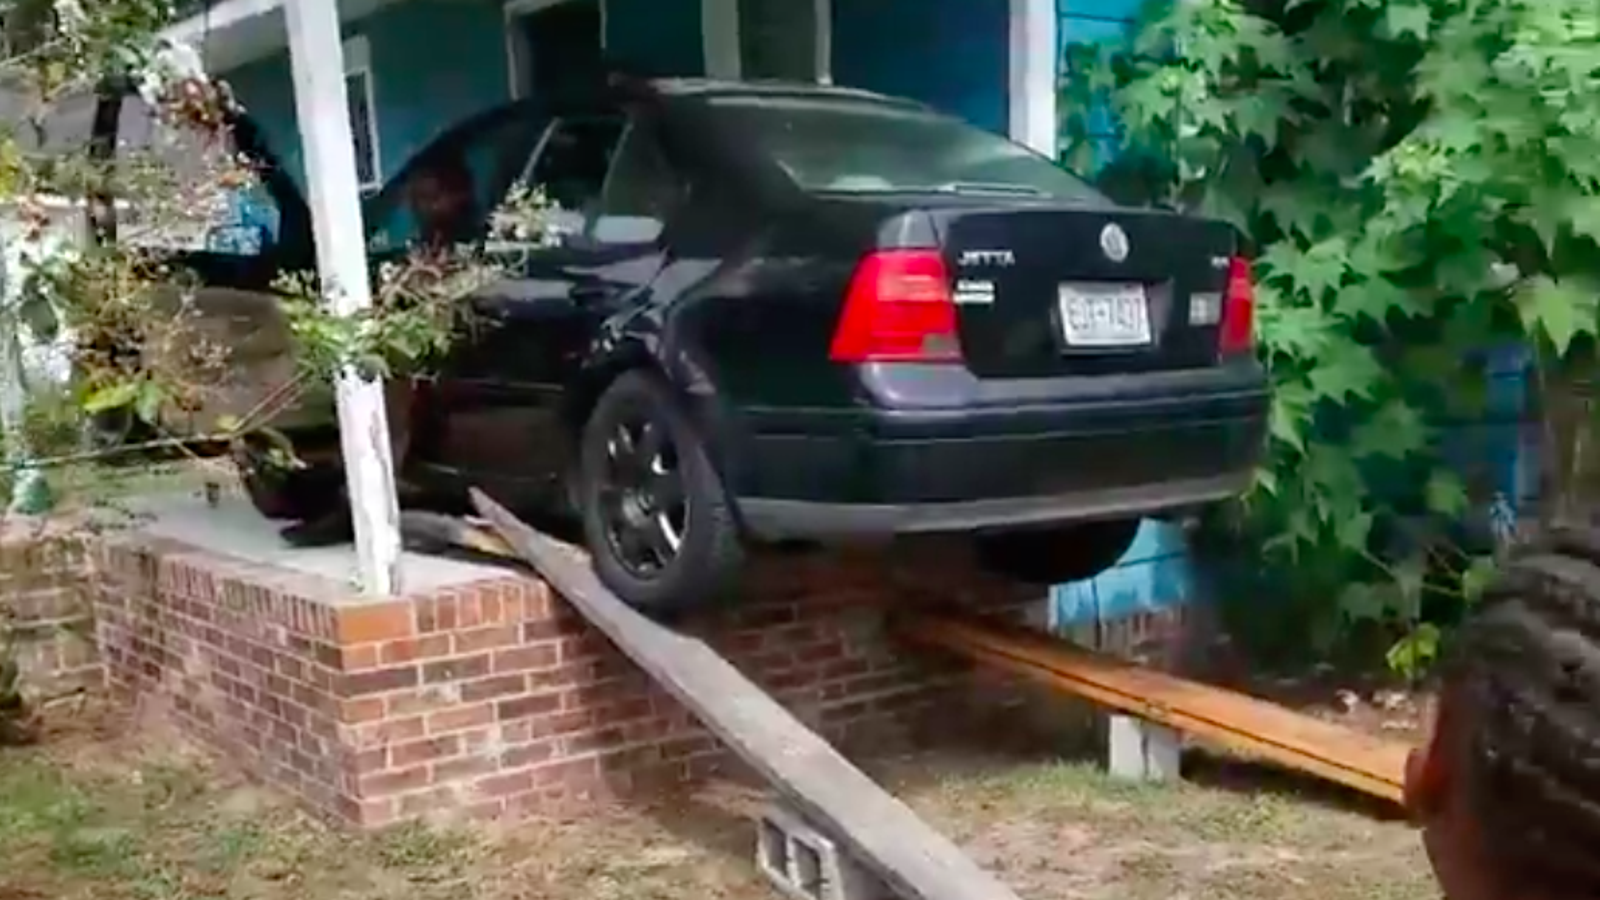 Watch A North Carolina Family Drive a VW Jetta Onto a Porch in Preparation for Hurricane Florence